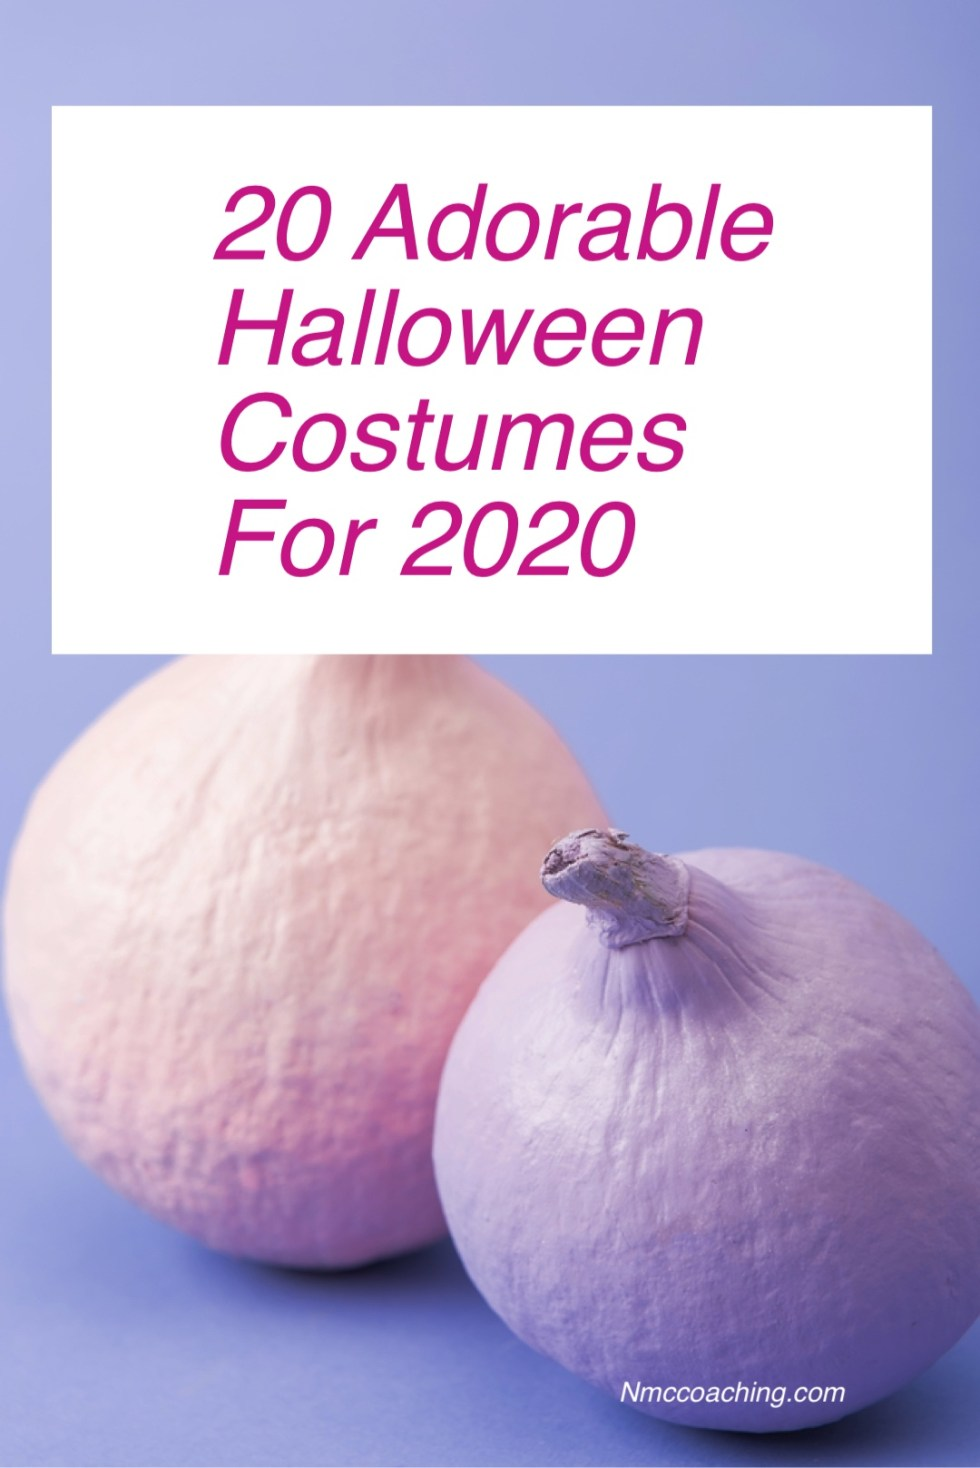 20 adorable Halloween costumes for 2020